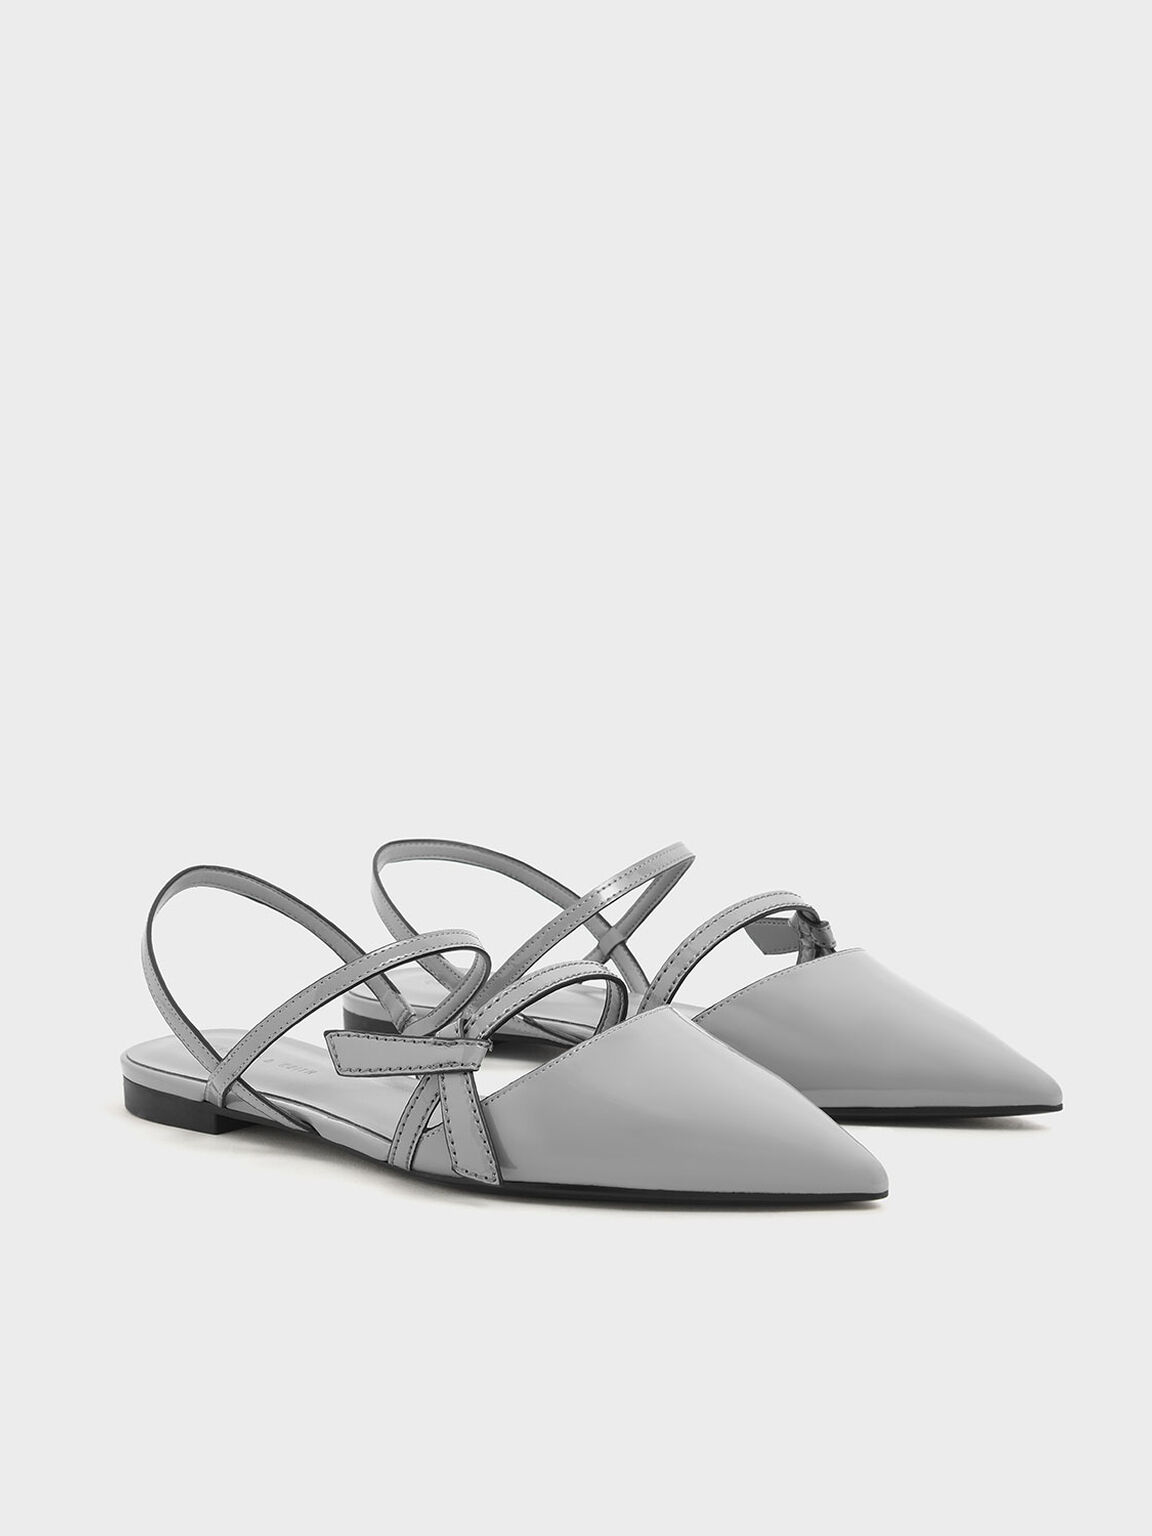 Front Knot Tie Patent Slingback Flats, Light Blue, hi-res